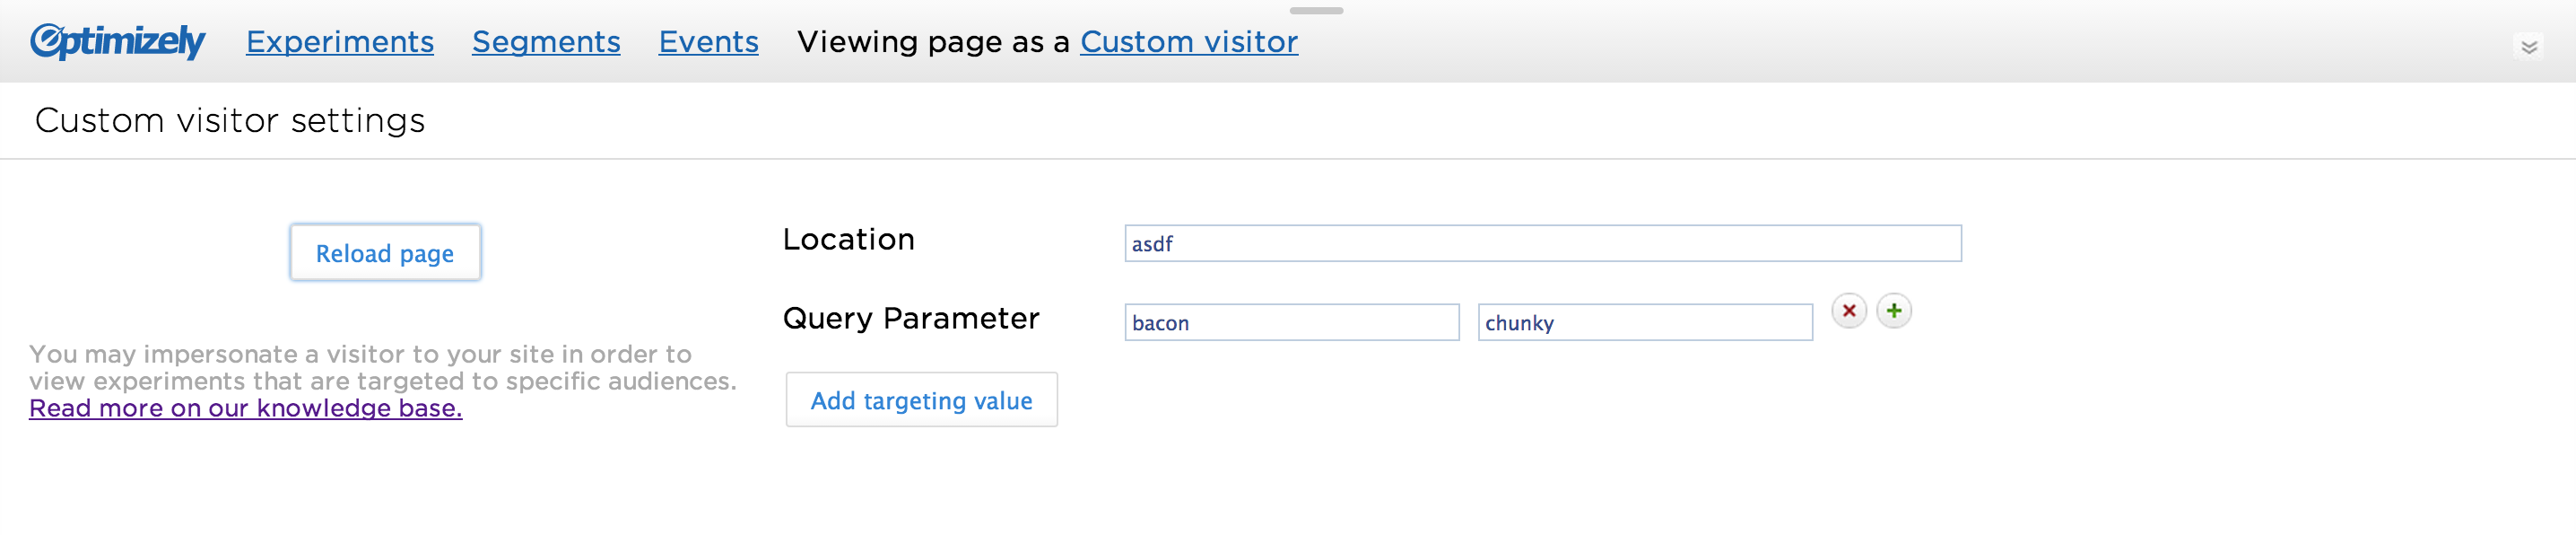 Almost final screenshot of adding custom visitor attributes